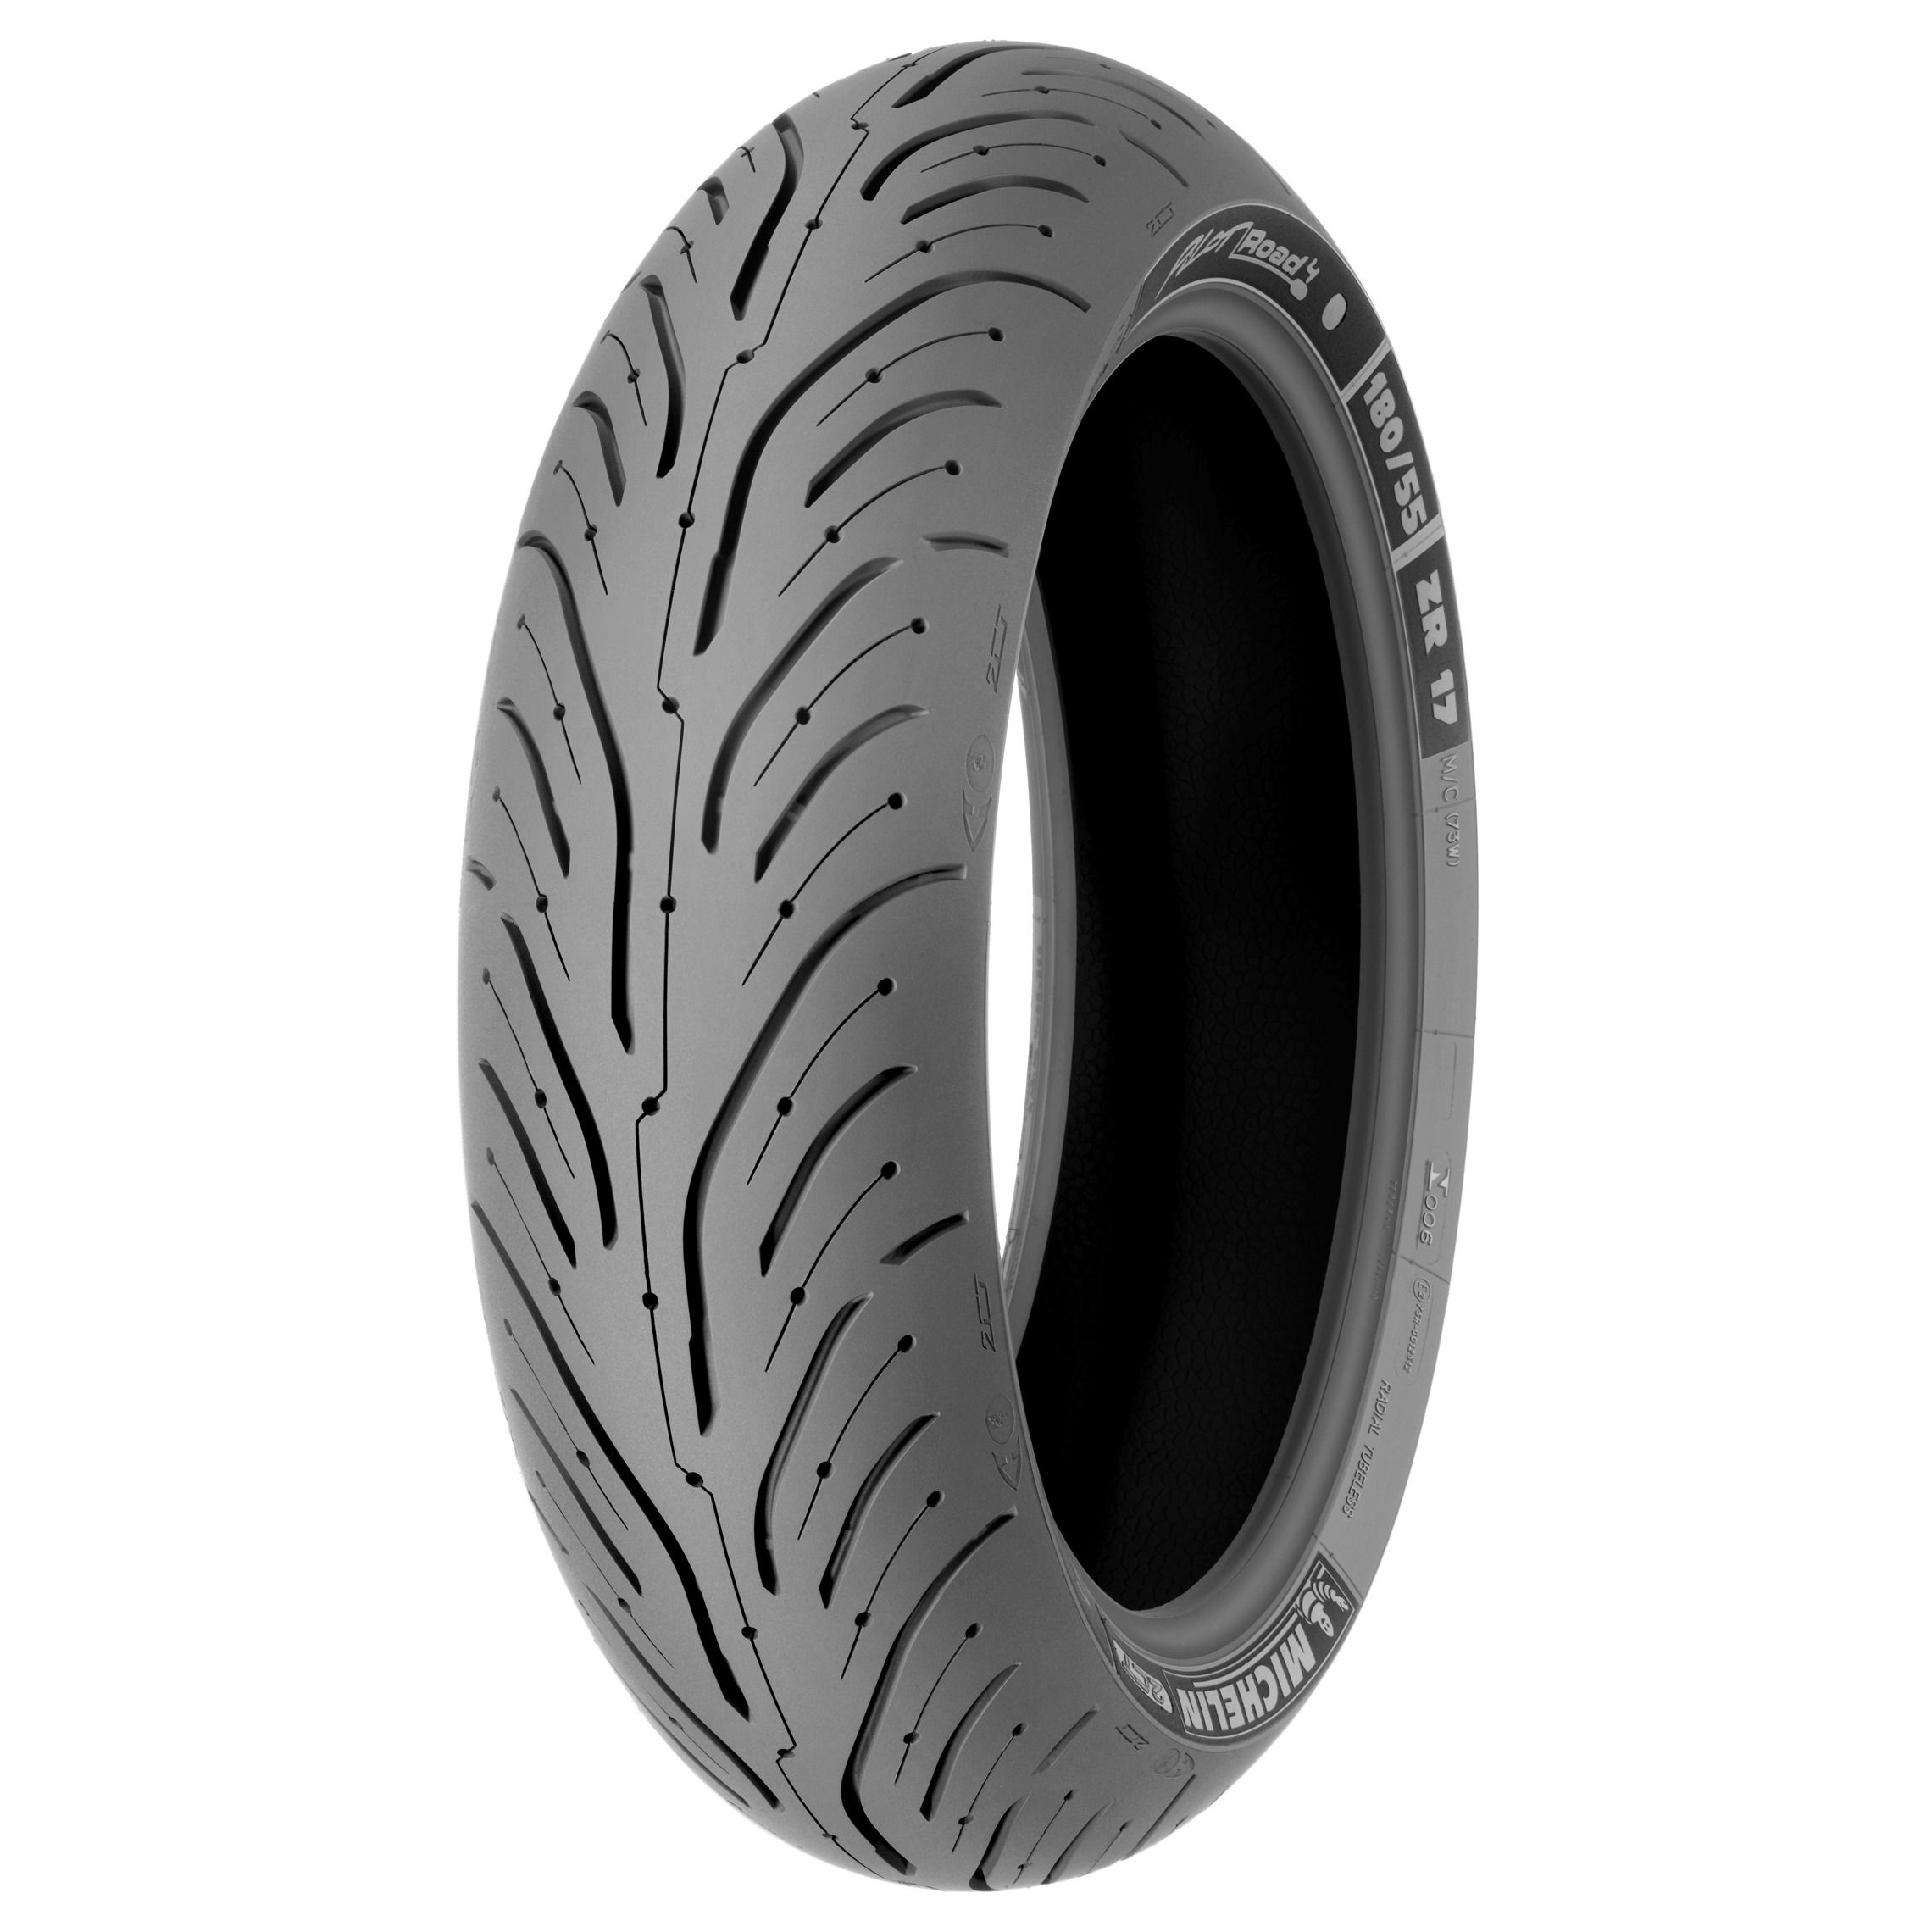 Michelin PILOT ROAD 4 190/50 ZR 17 Rear Two-Wheeler Tyre